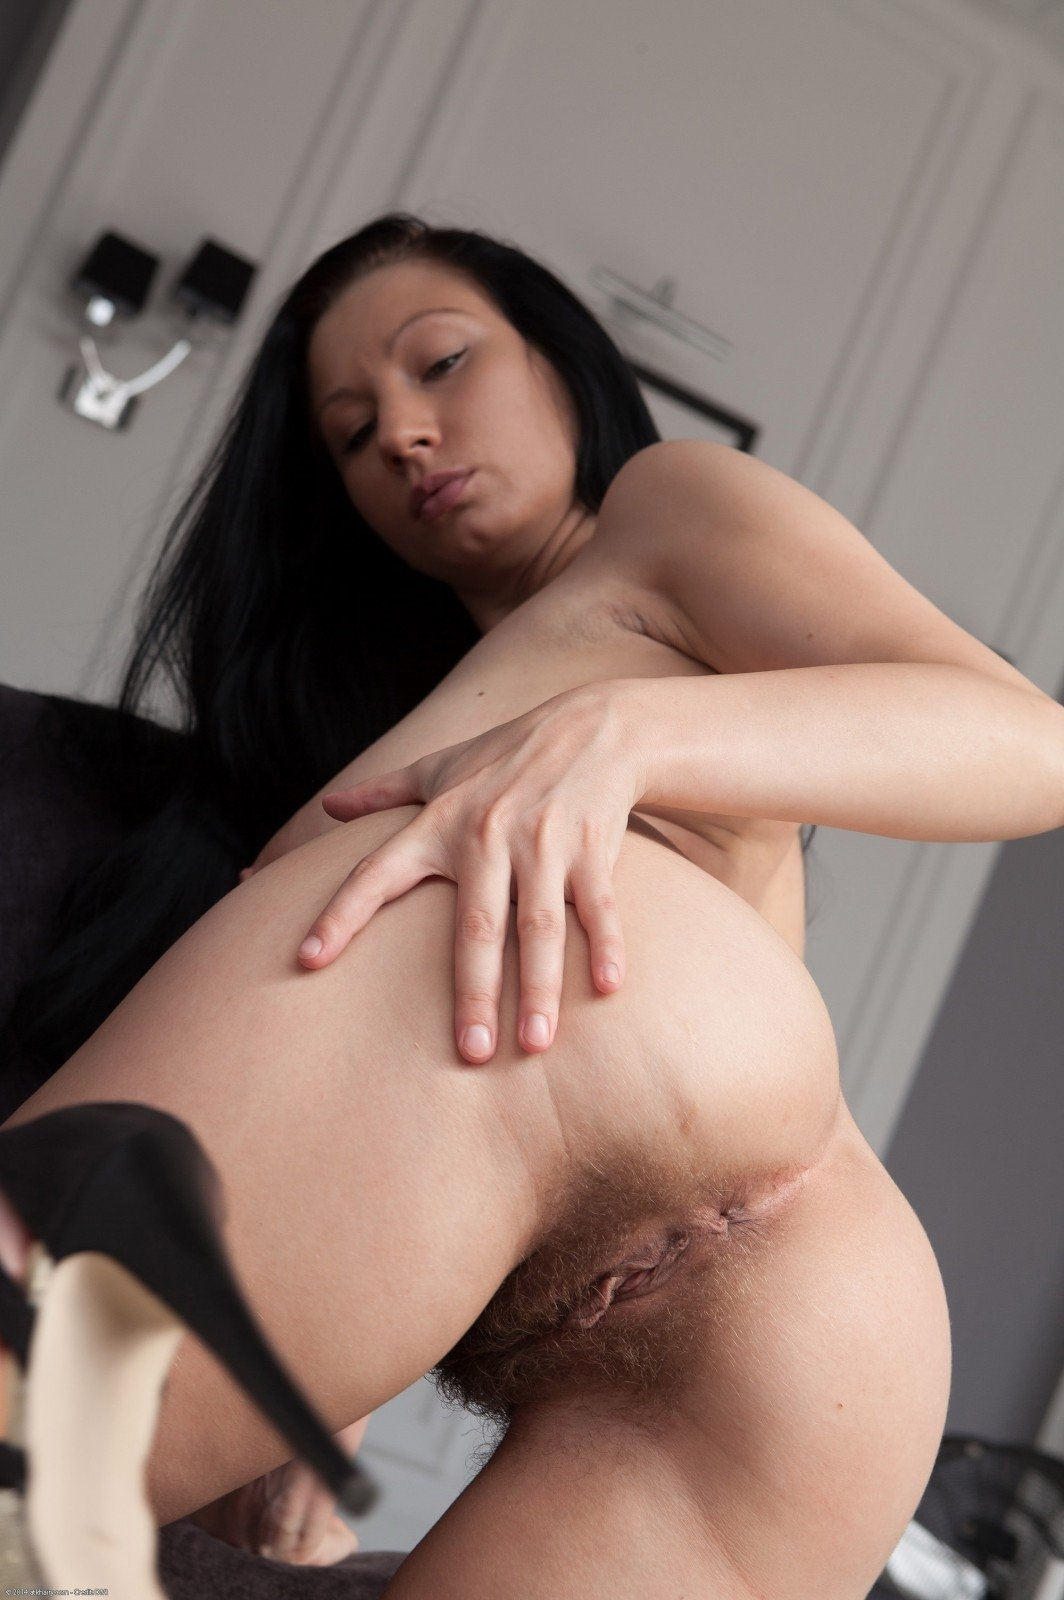 Husband sloppy pussy